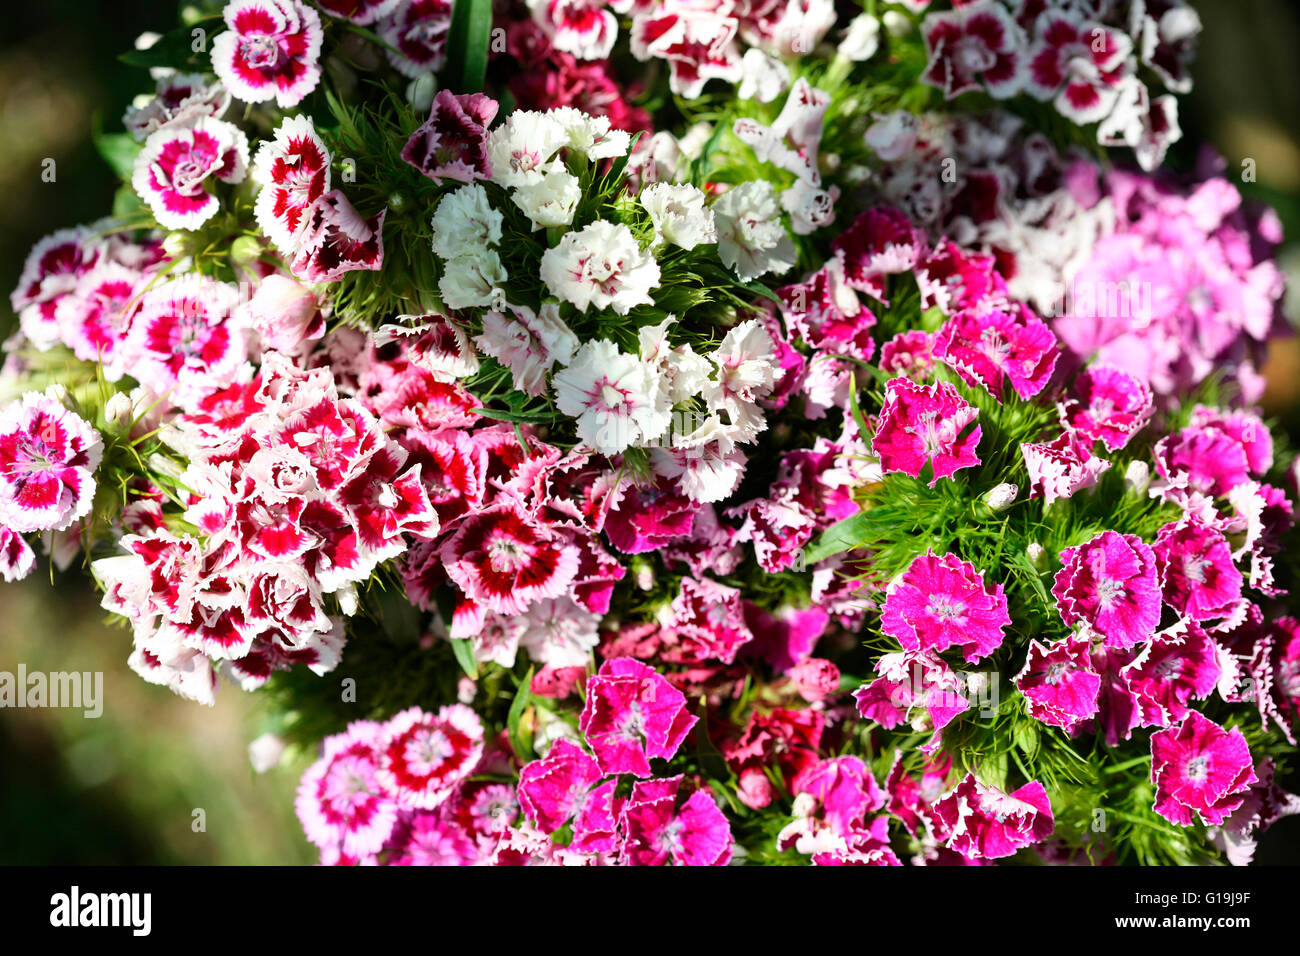 mix of pink and red sweet williams - language of flowers 'gallantry' 'a smile' Jane Ann Butler Photography - Stock Image